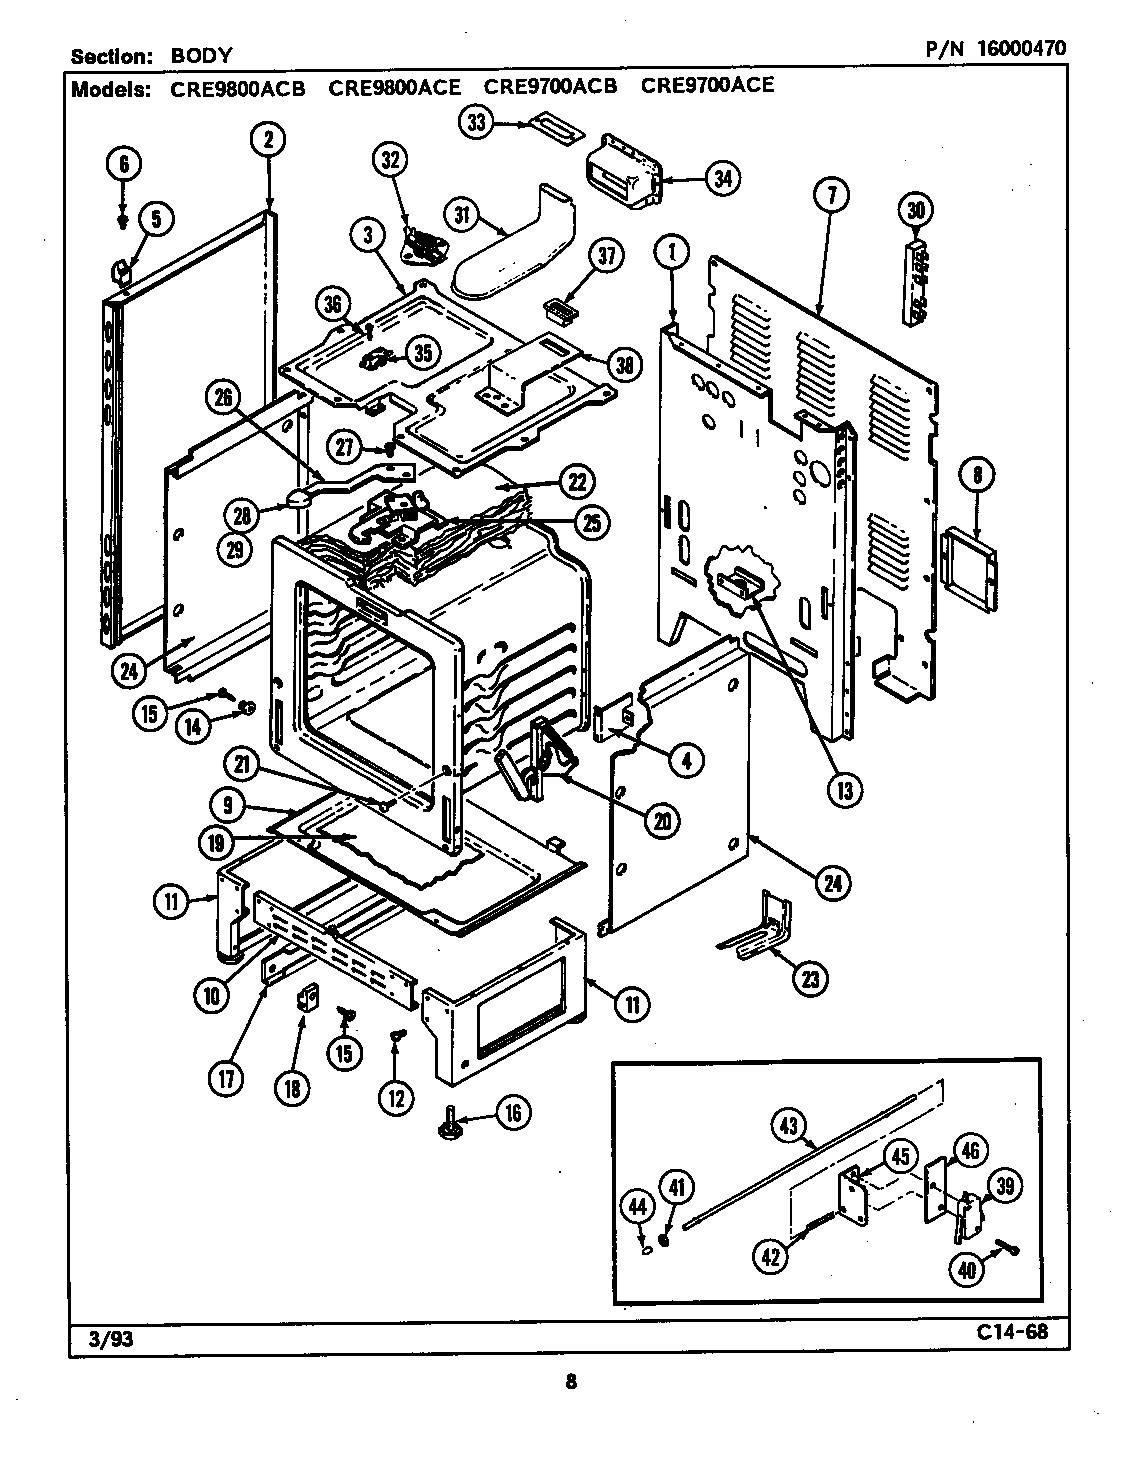 Microwave Replacement Parts Motor Repalcement Parts And Diagram